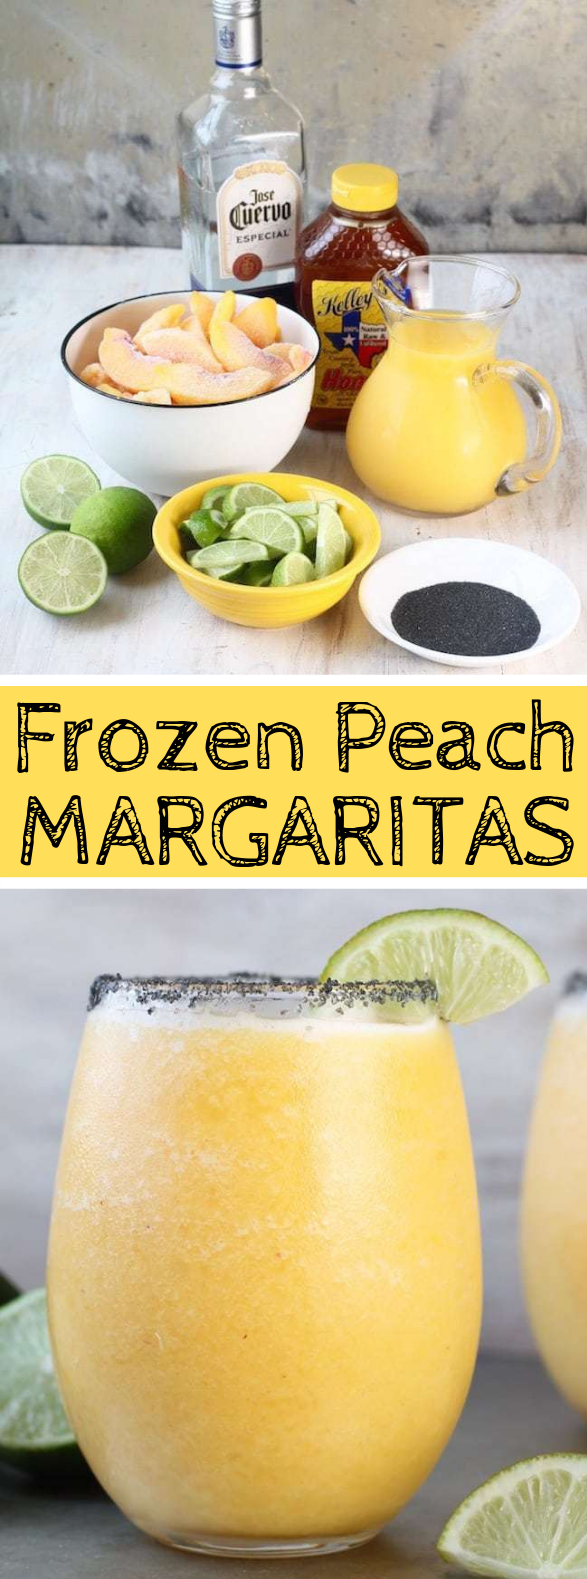 FROZEN PEACH MARGARITAS #drink #beverages